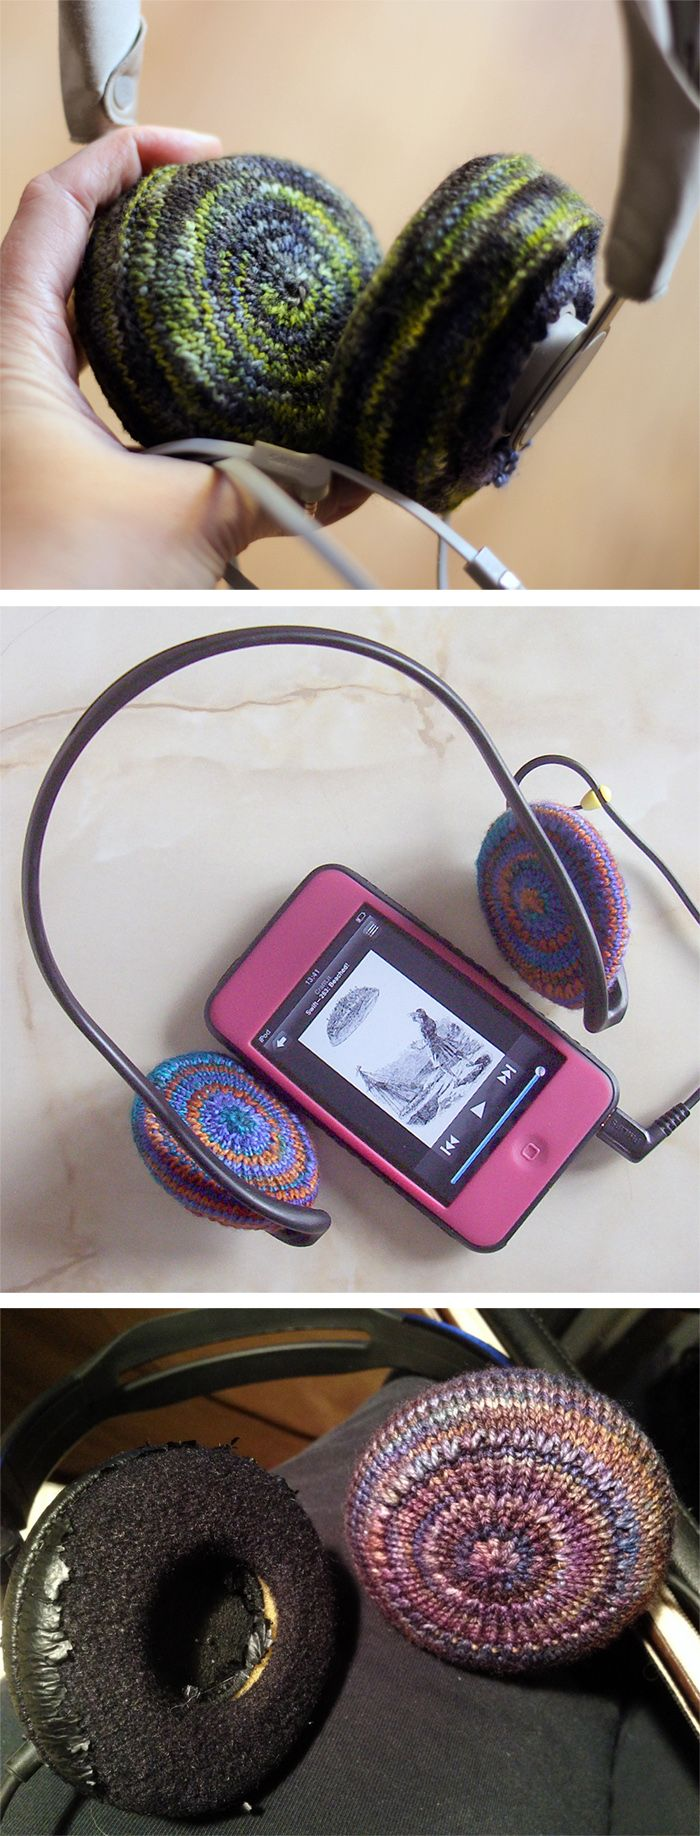 Free Knitting Pattern for EZ as pi Headphone Covers - Transform your hard or worn out headphones with scraps of your favorite sock yarn knit into soft colorful cozies. Designed by Jocelyn Blair. Pictured projects by elizanca who made modifications, aKnitOnTheSide, and AllieSan